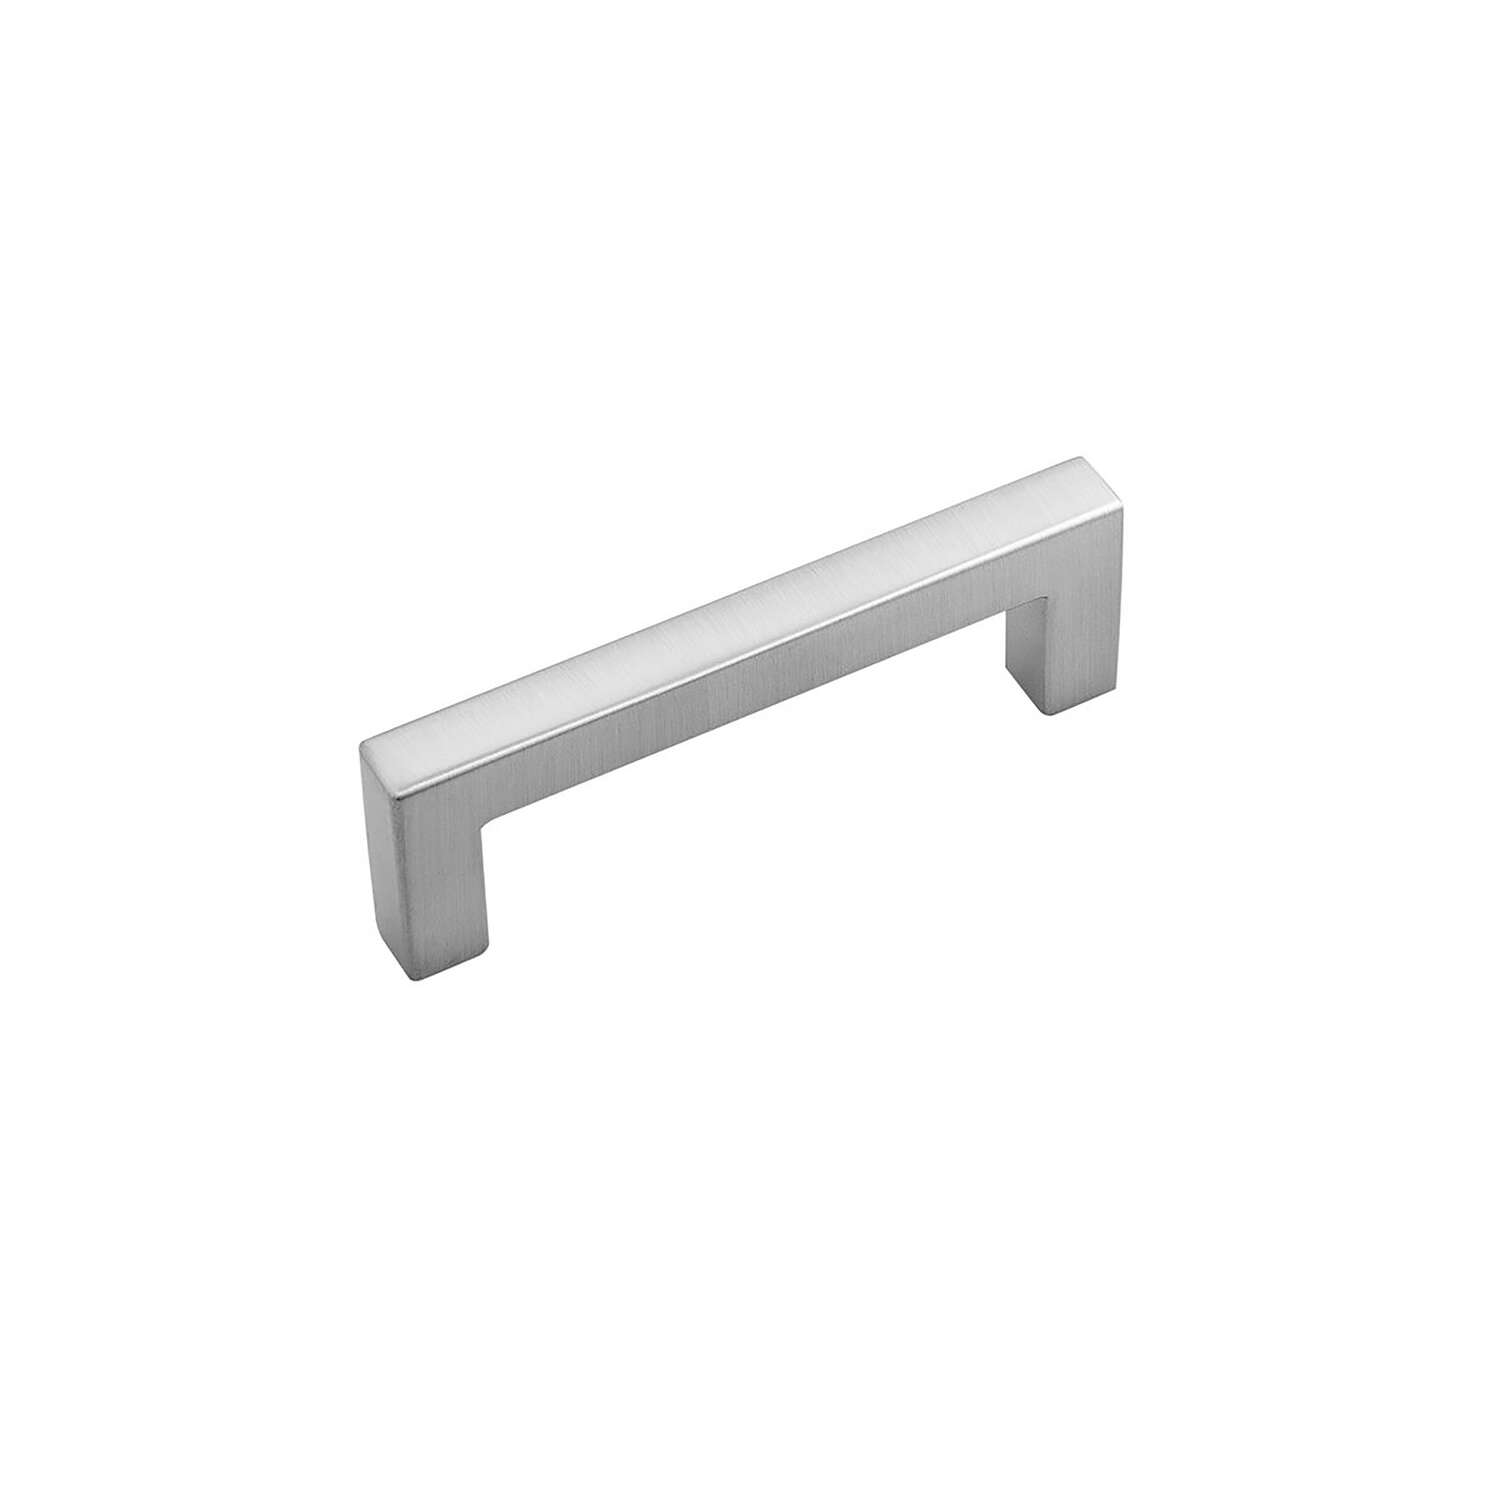 Hickory Hardware Skylight Contemporary Bar Cabinet Pull 3 in. Stainless Steel Silver 1 pk